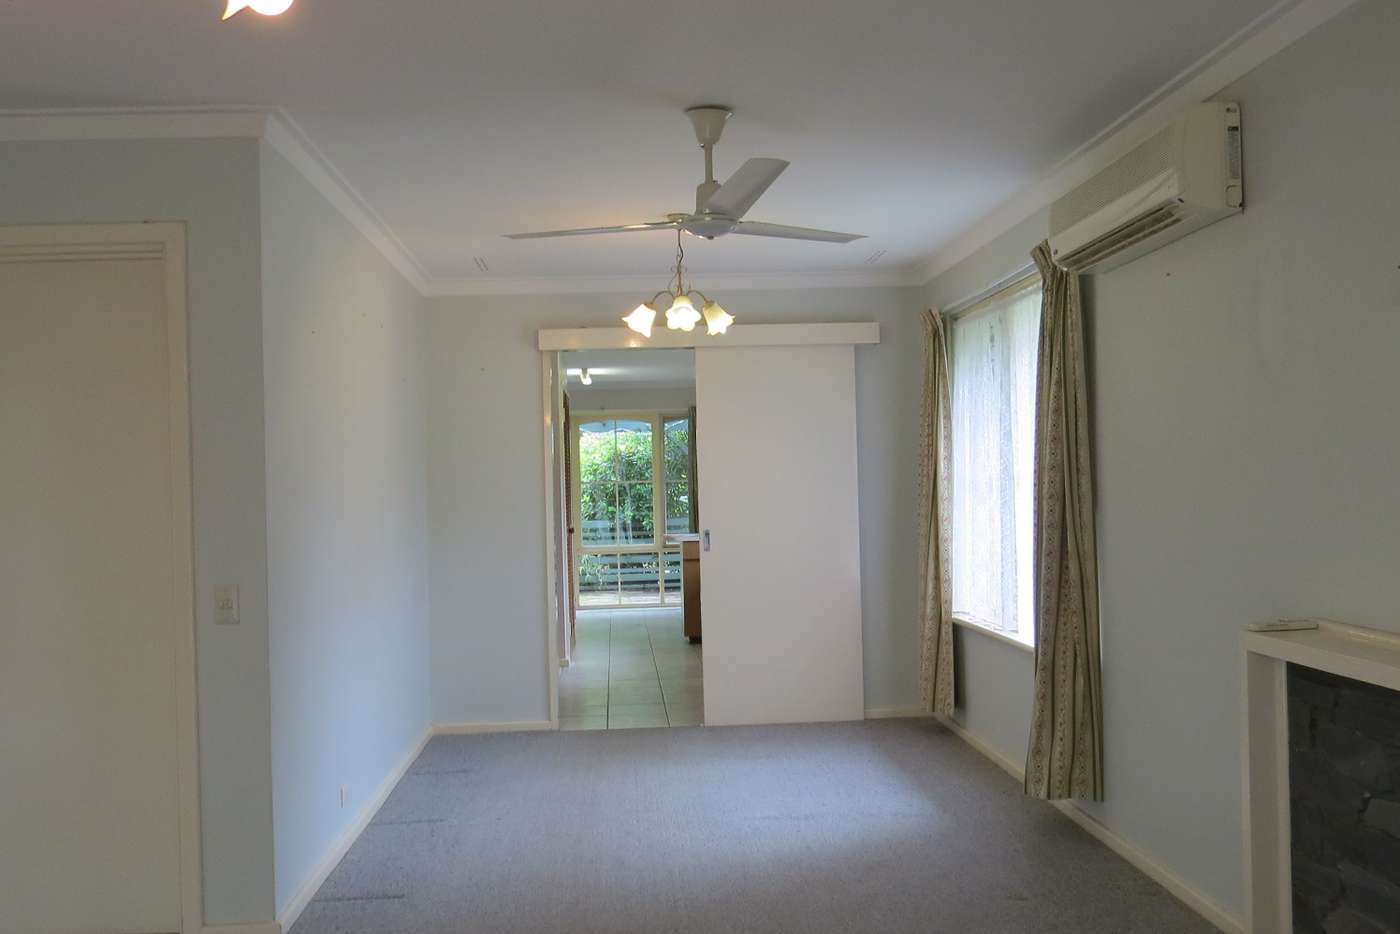 Sixth view of Homely house listing, 6 Hart Street, Lesmurdie WA 6076